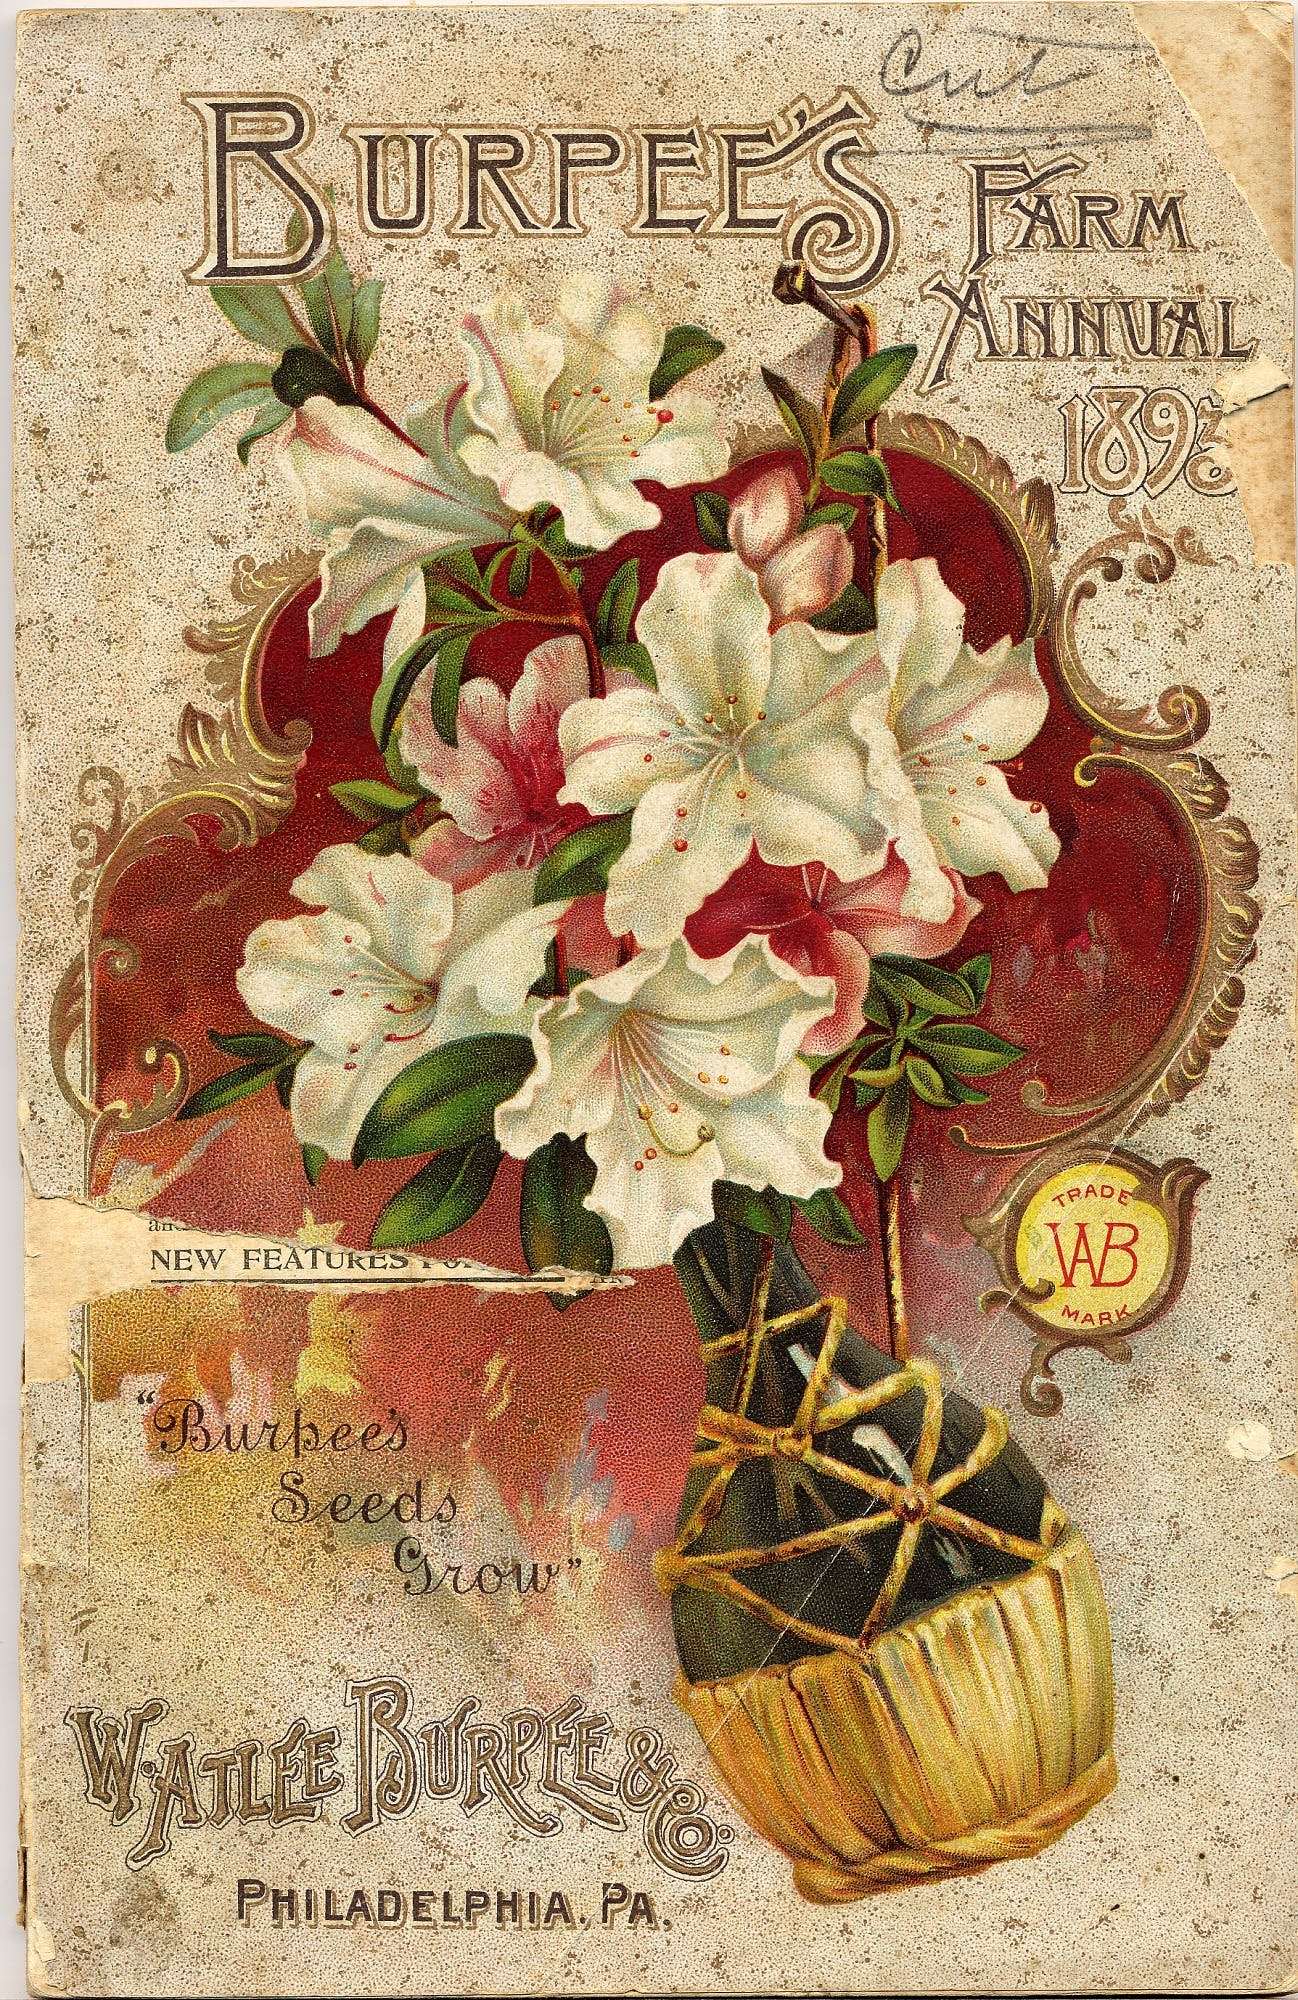 seed catalog image with flowers